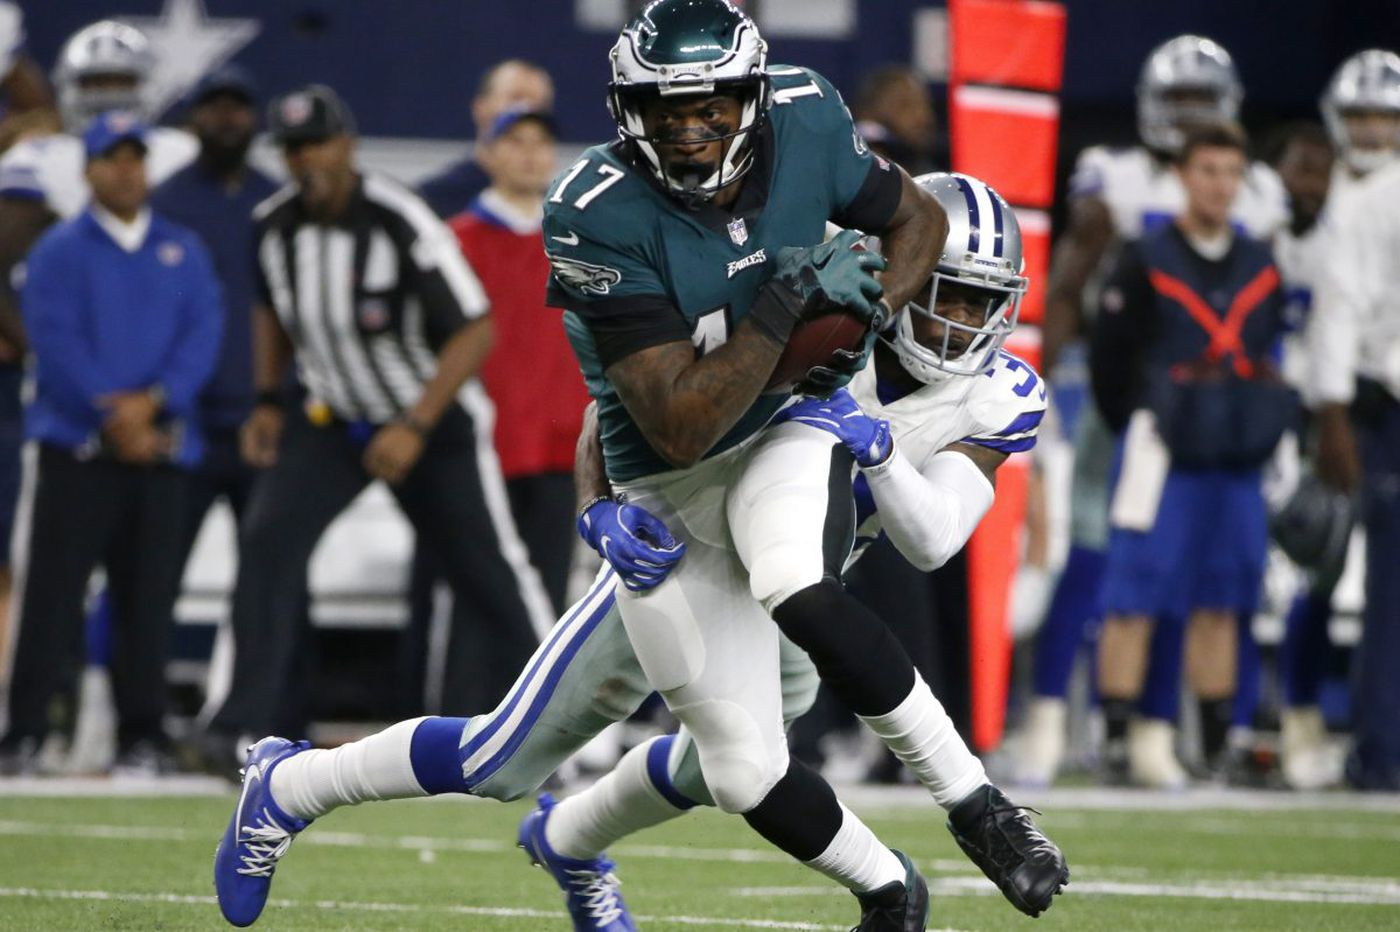 Eagles-Bears key pregame statistics to know | Paul Domowitch